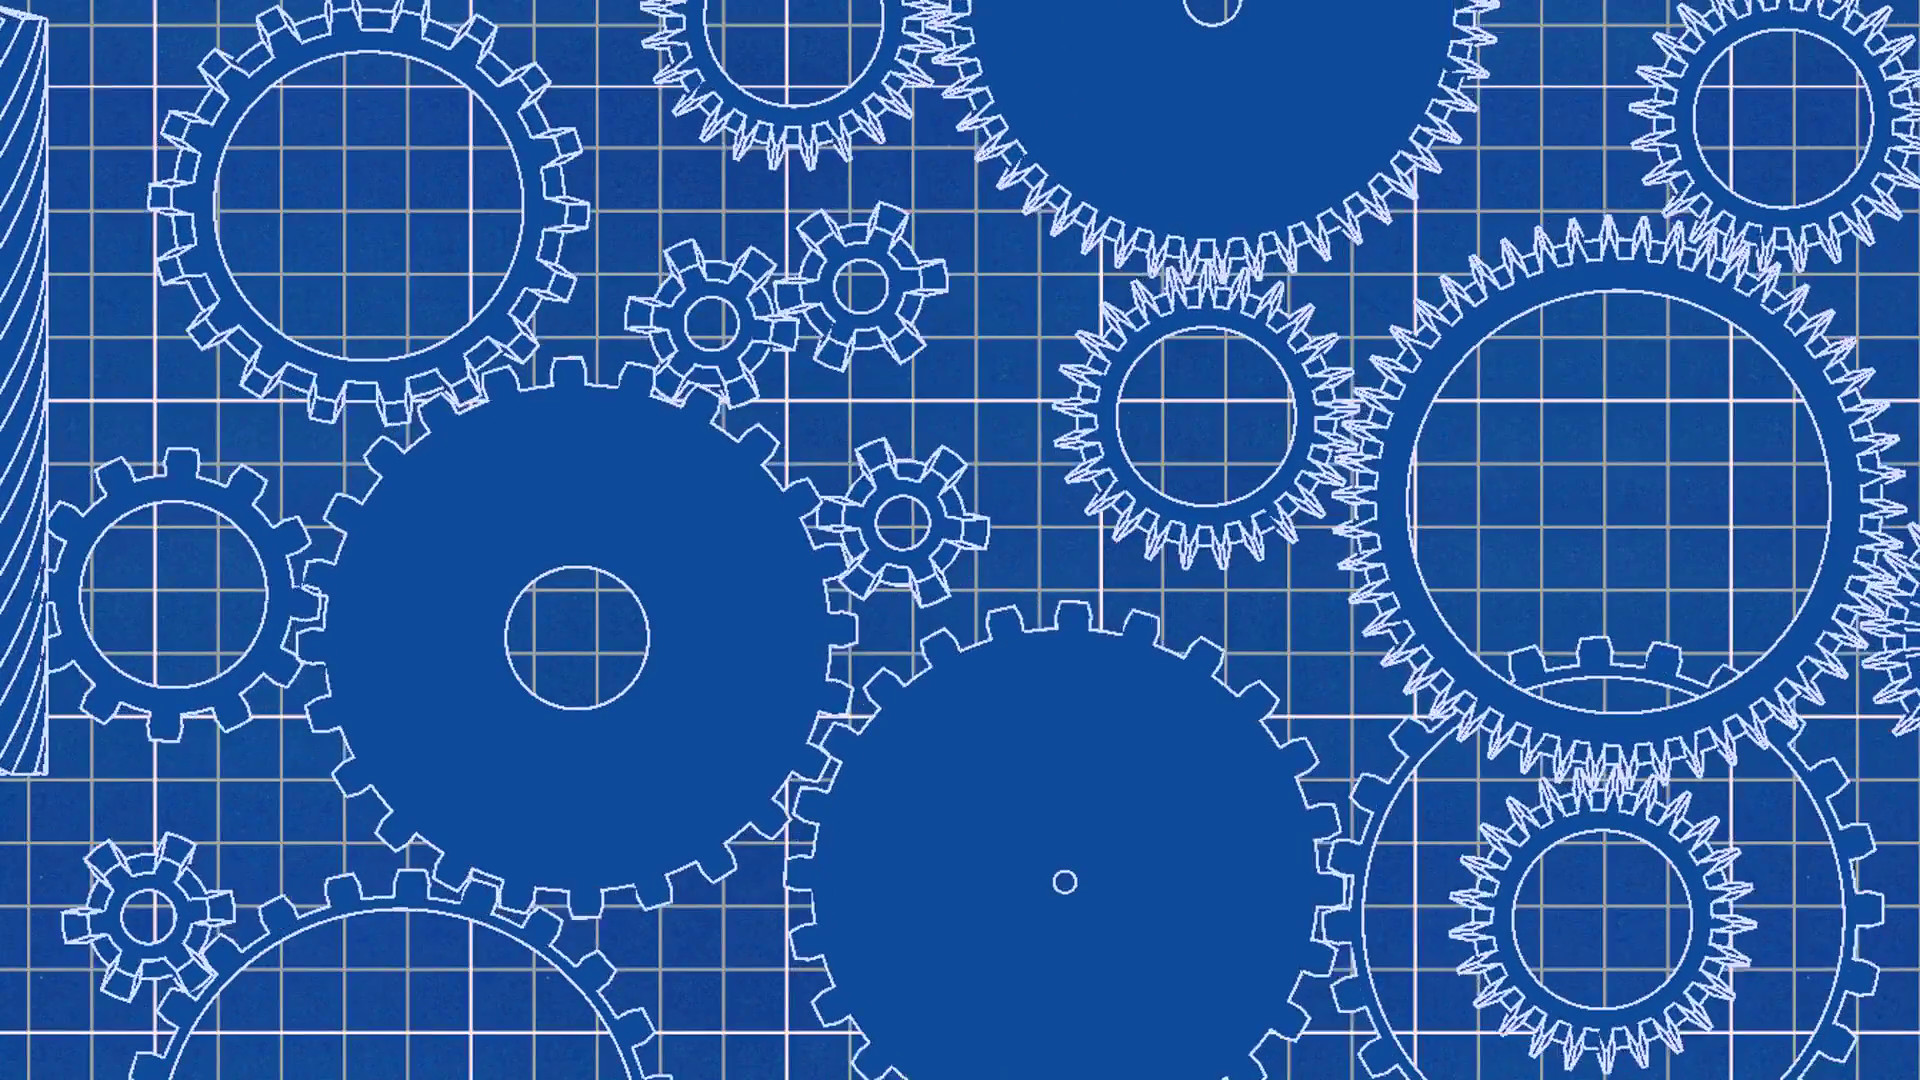 Blue print background 46 images 1920x1080 gear cogs rotating system gearbox blueprint grid mechanism motion background videoblocks malvernweather Images